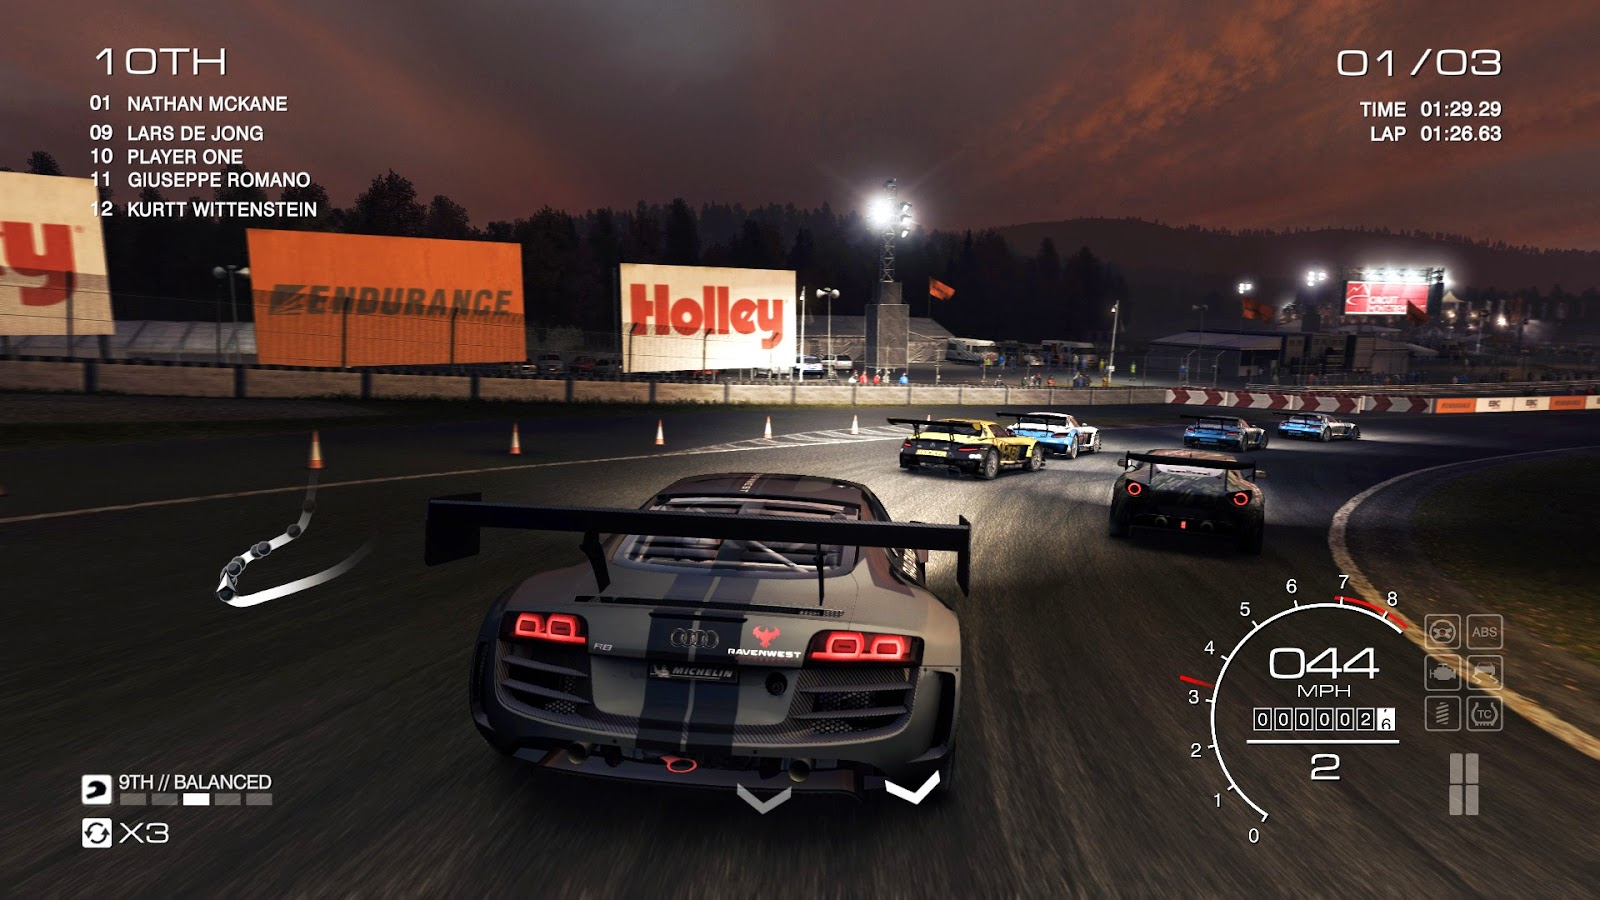 Review: GRID Autosport (Sony PlayStation 3) - Digitally